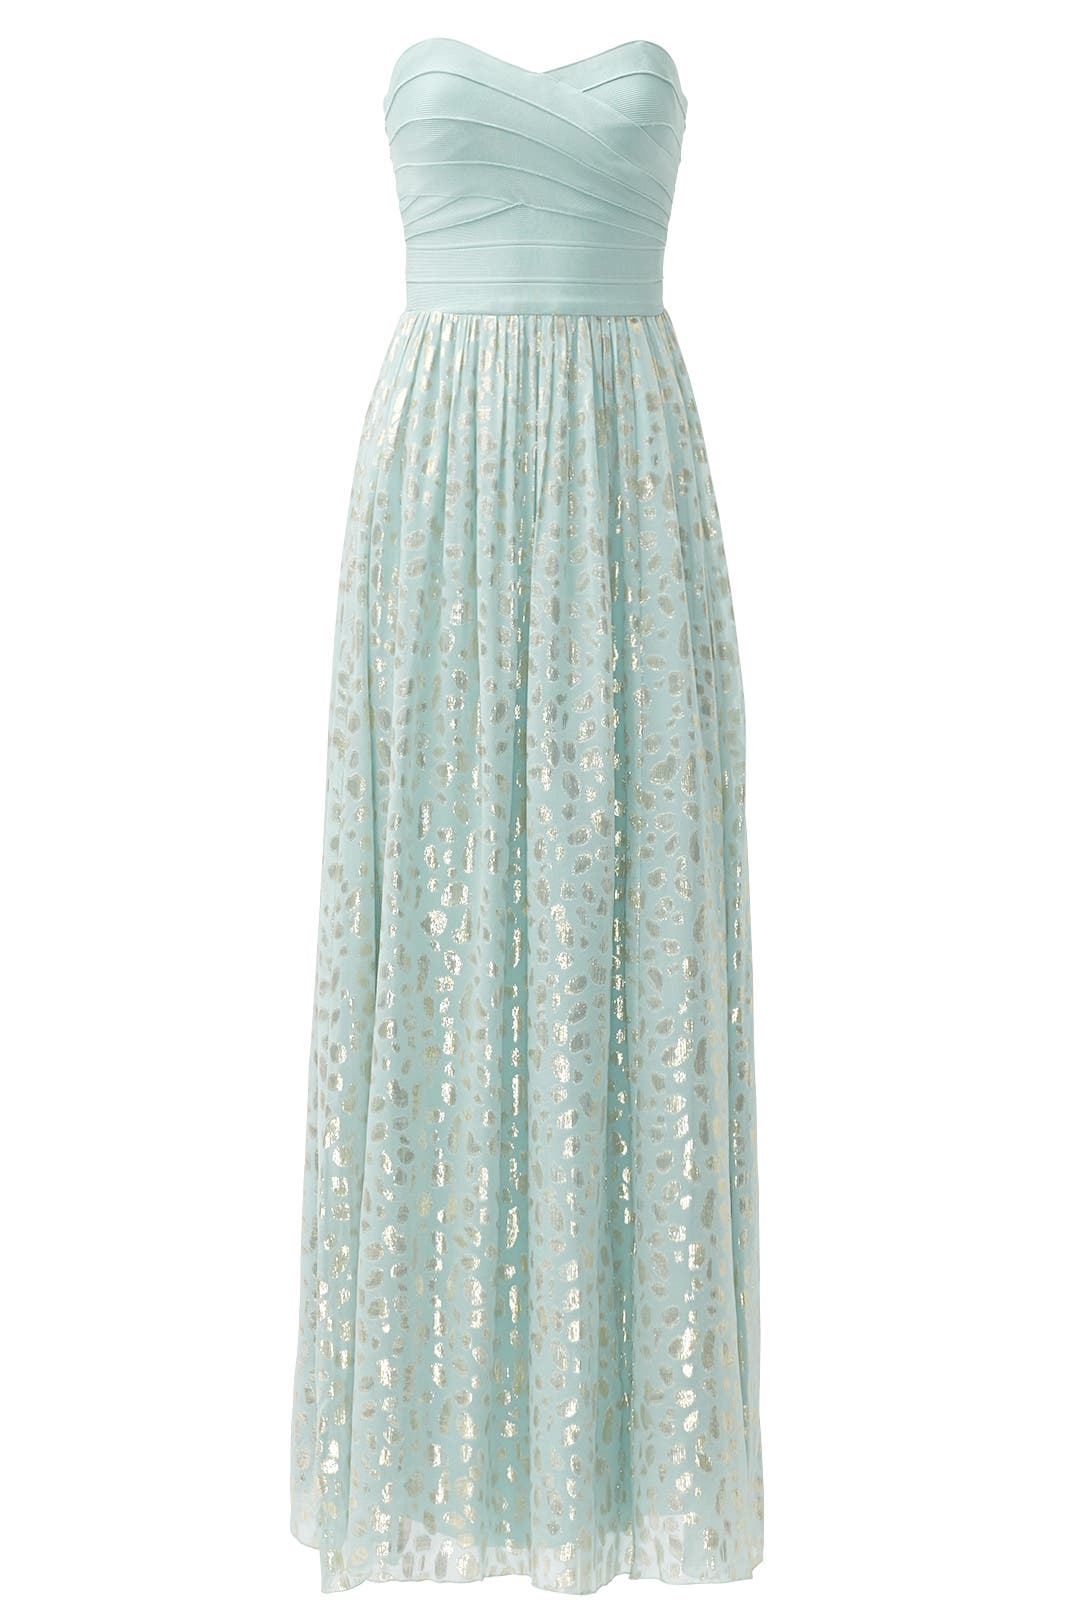 Mint Mosaic Maxi Dress by ERIN erin fetherston for $129 | Rent the ...